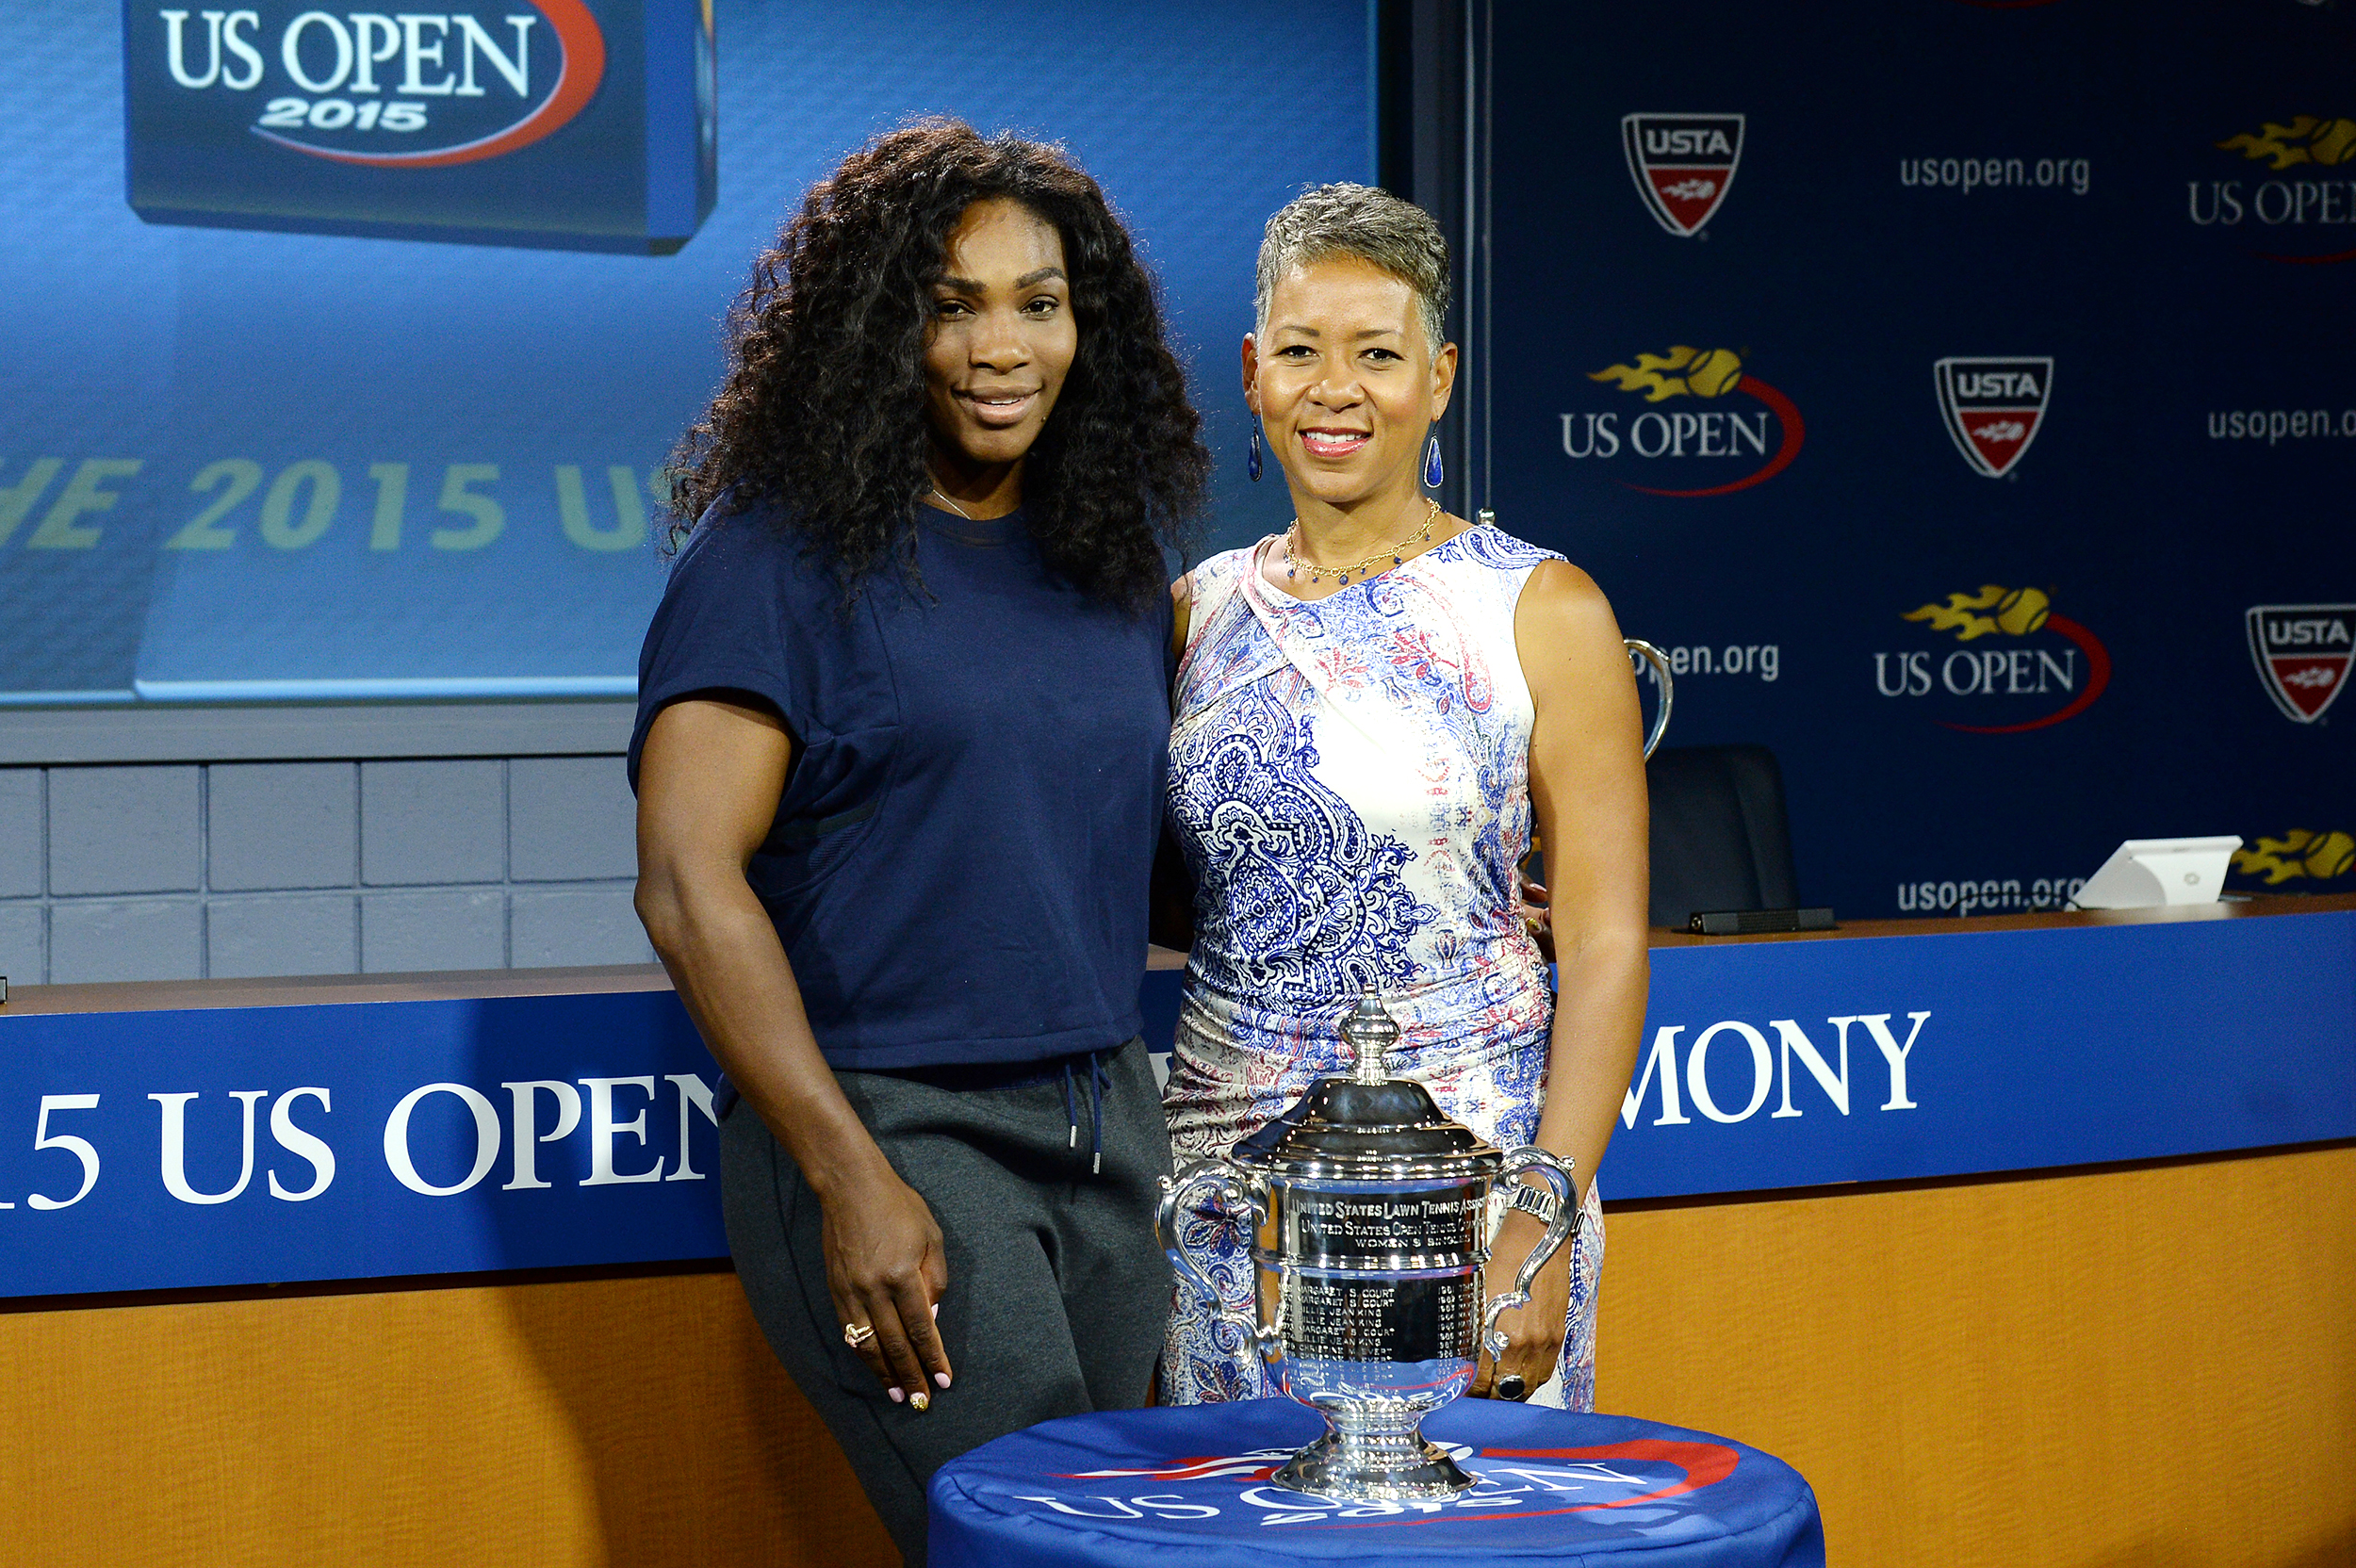 Image: US Open Draw Ceremony